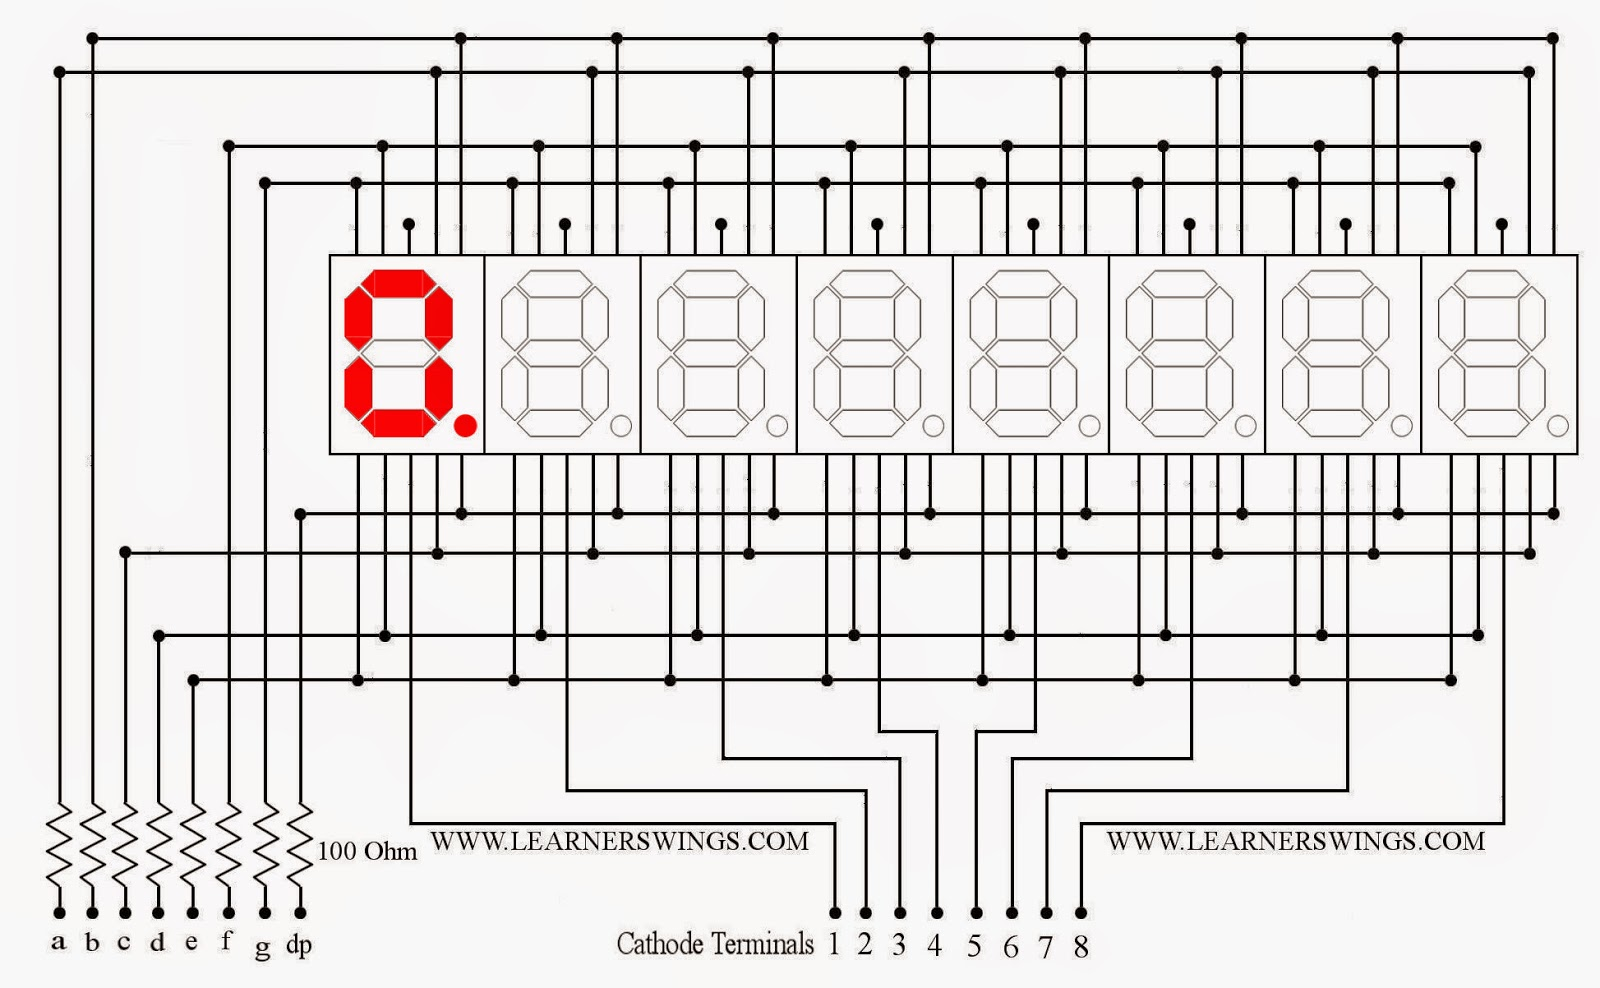 Display 0 In A Seven Segment Display Of A Cluster Of Displays Using Arduino Part 11 Of 16